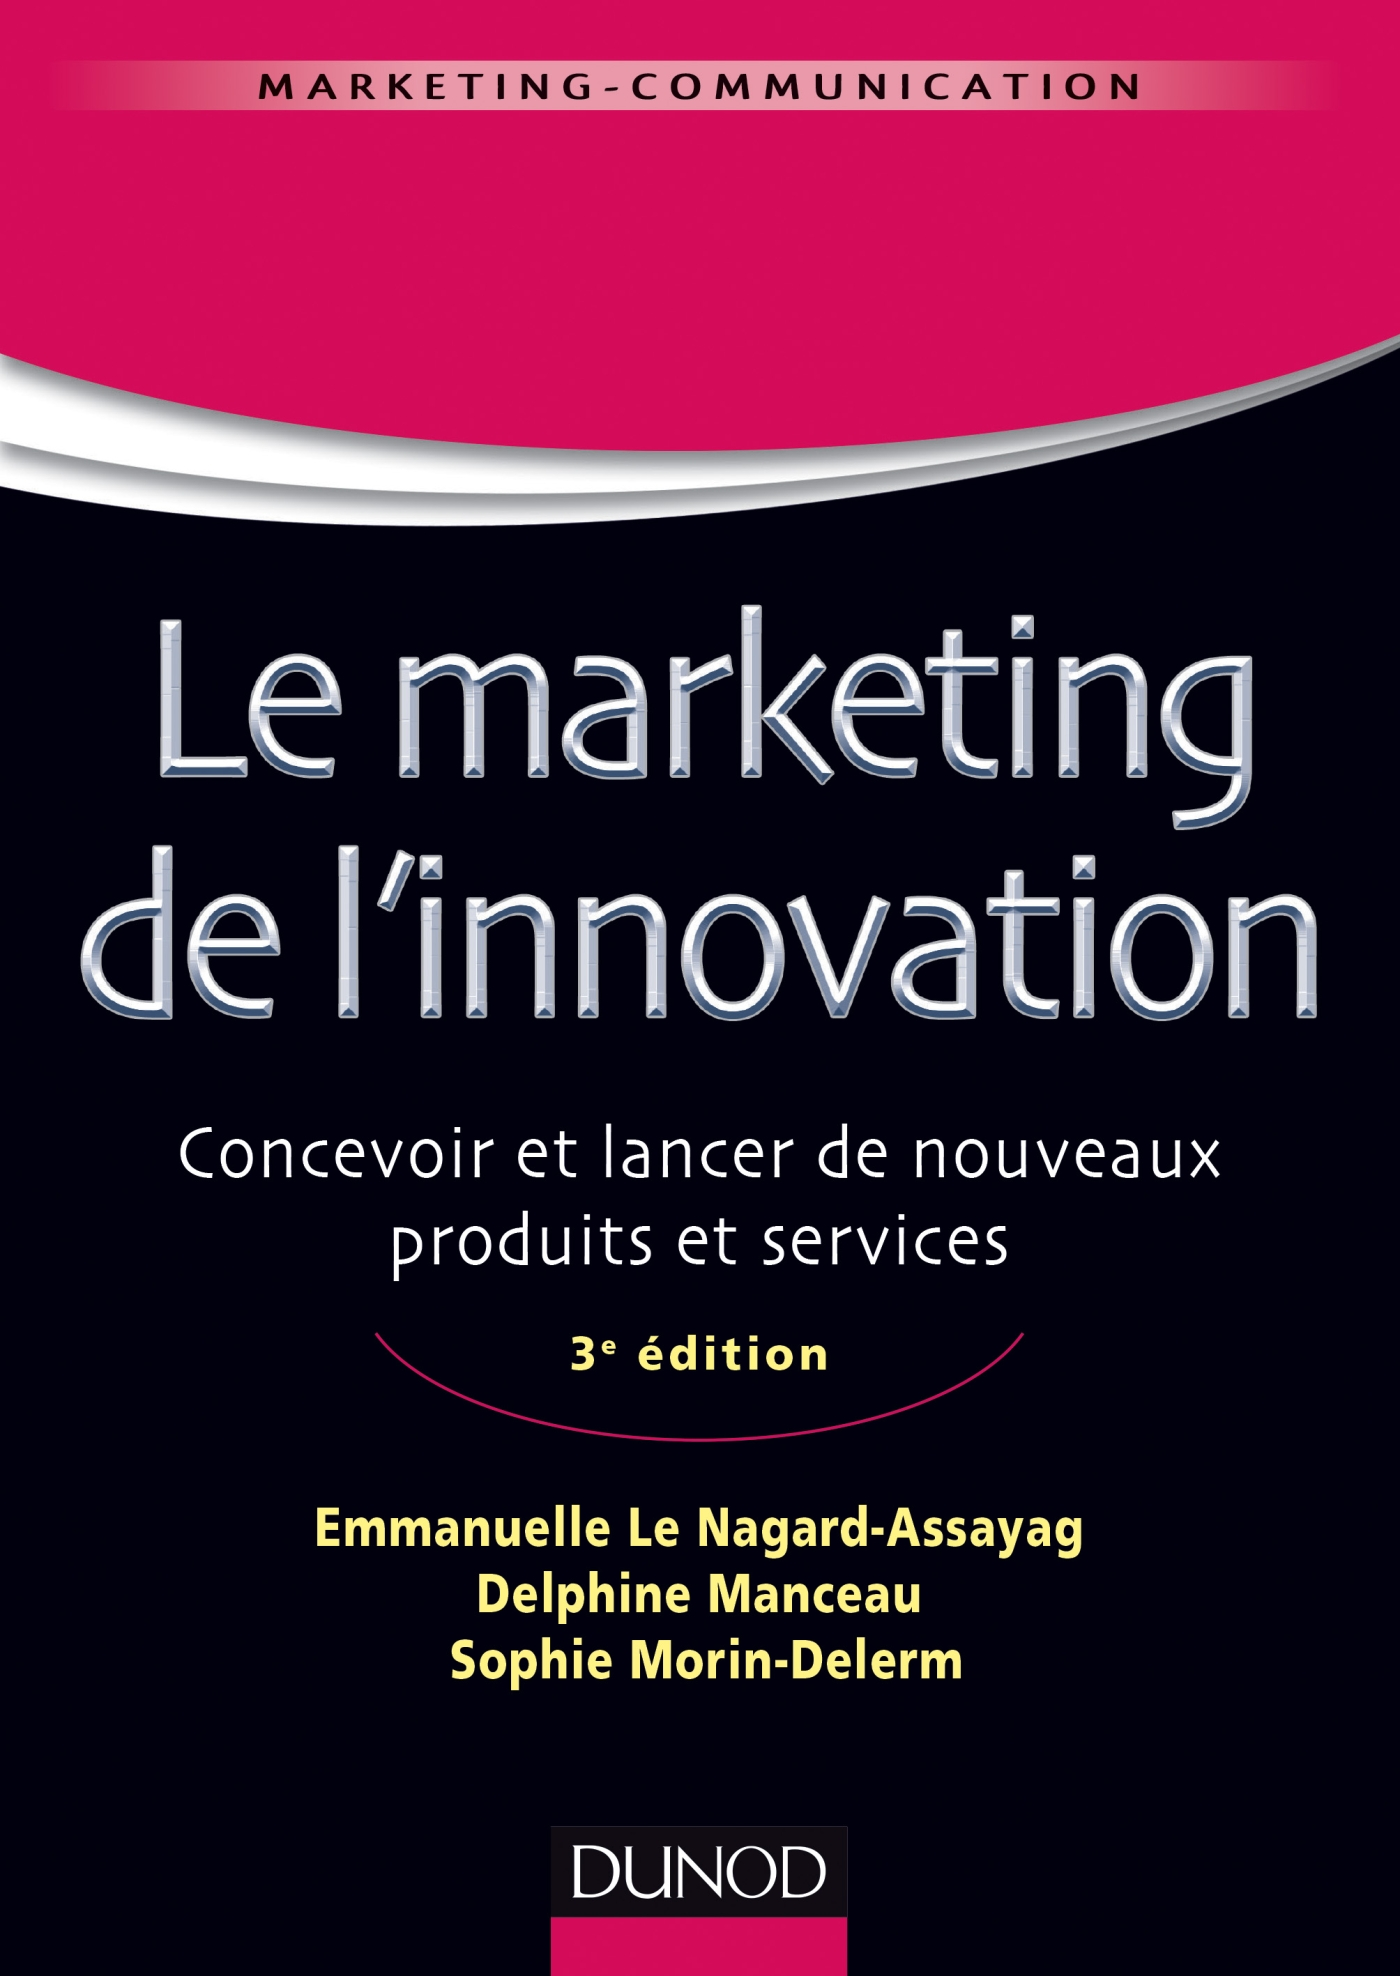 Le marketing de l'innovation - 3e édition